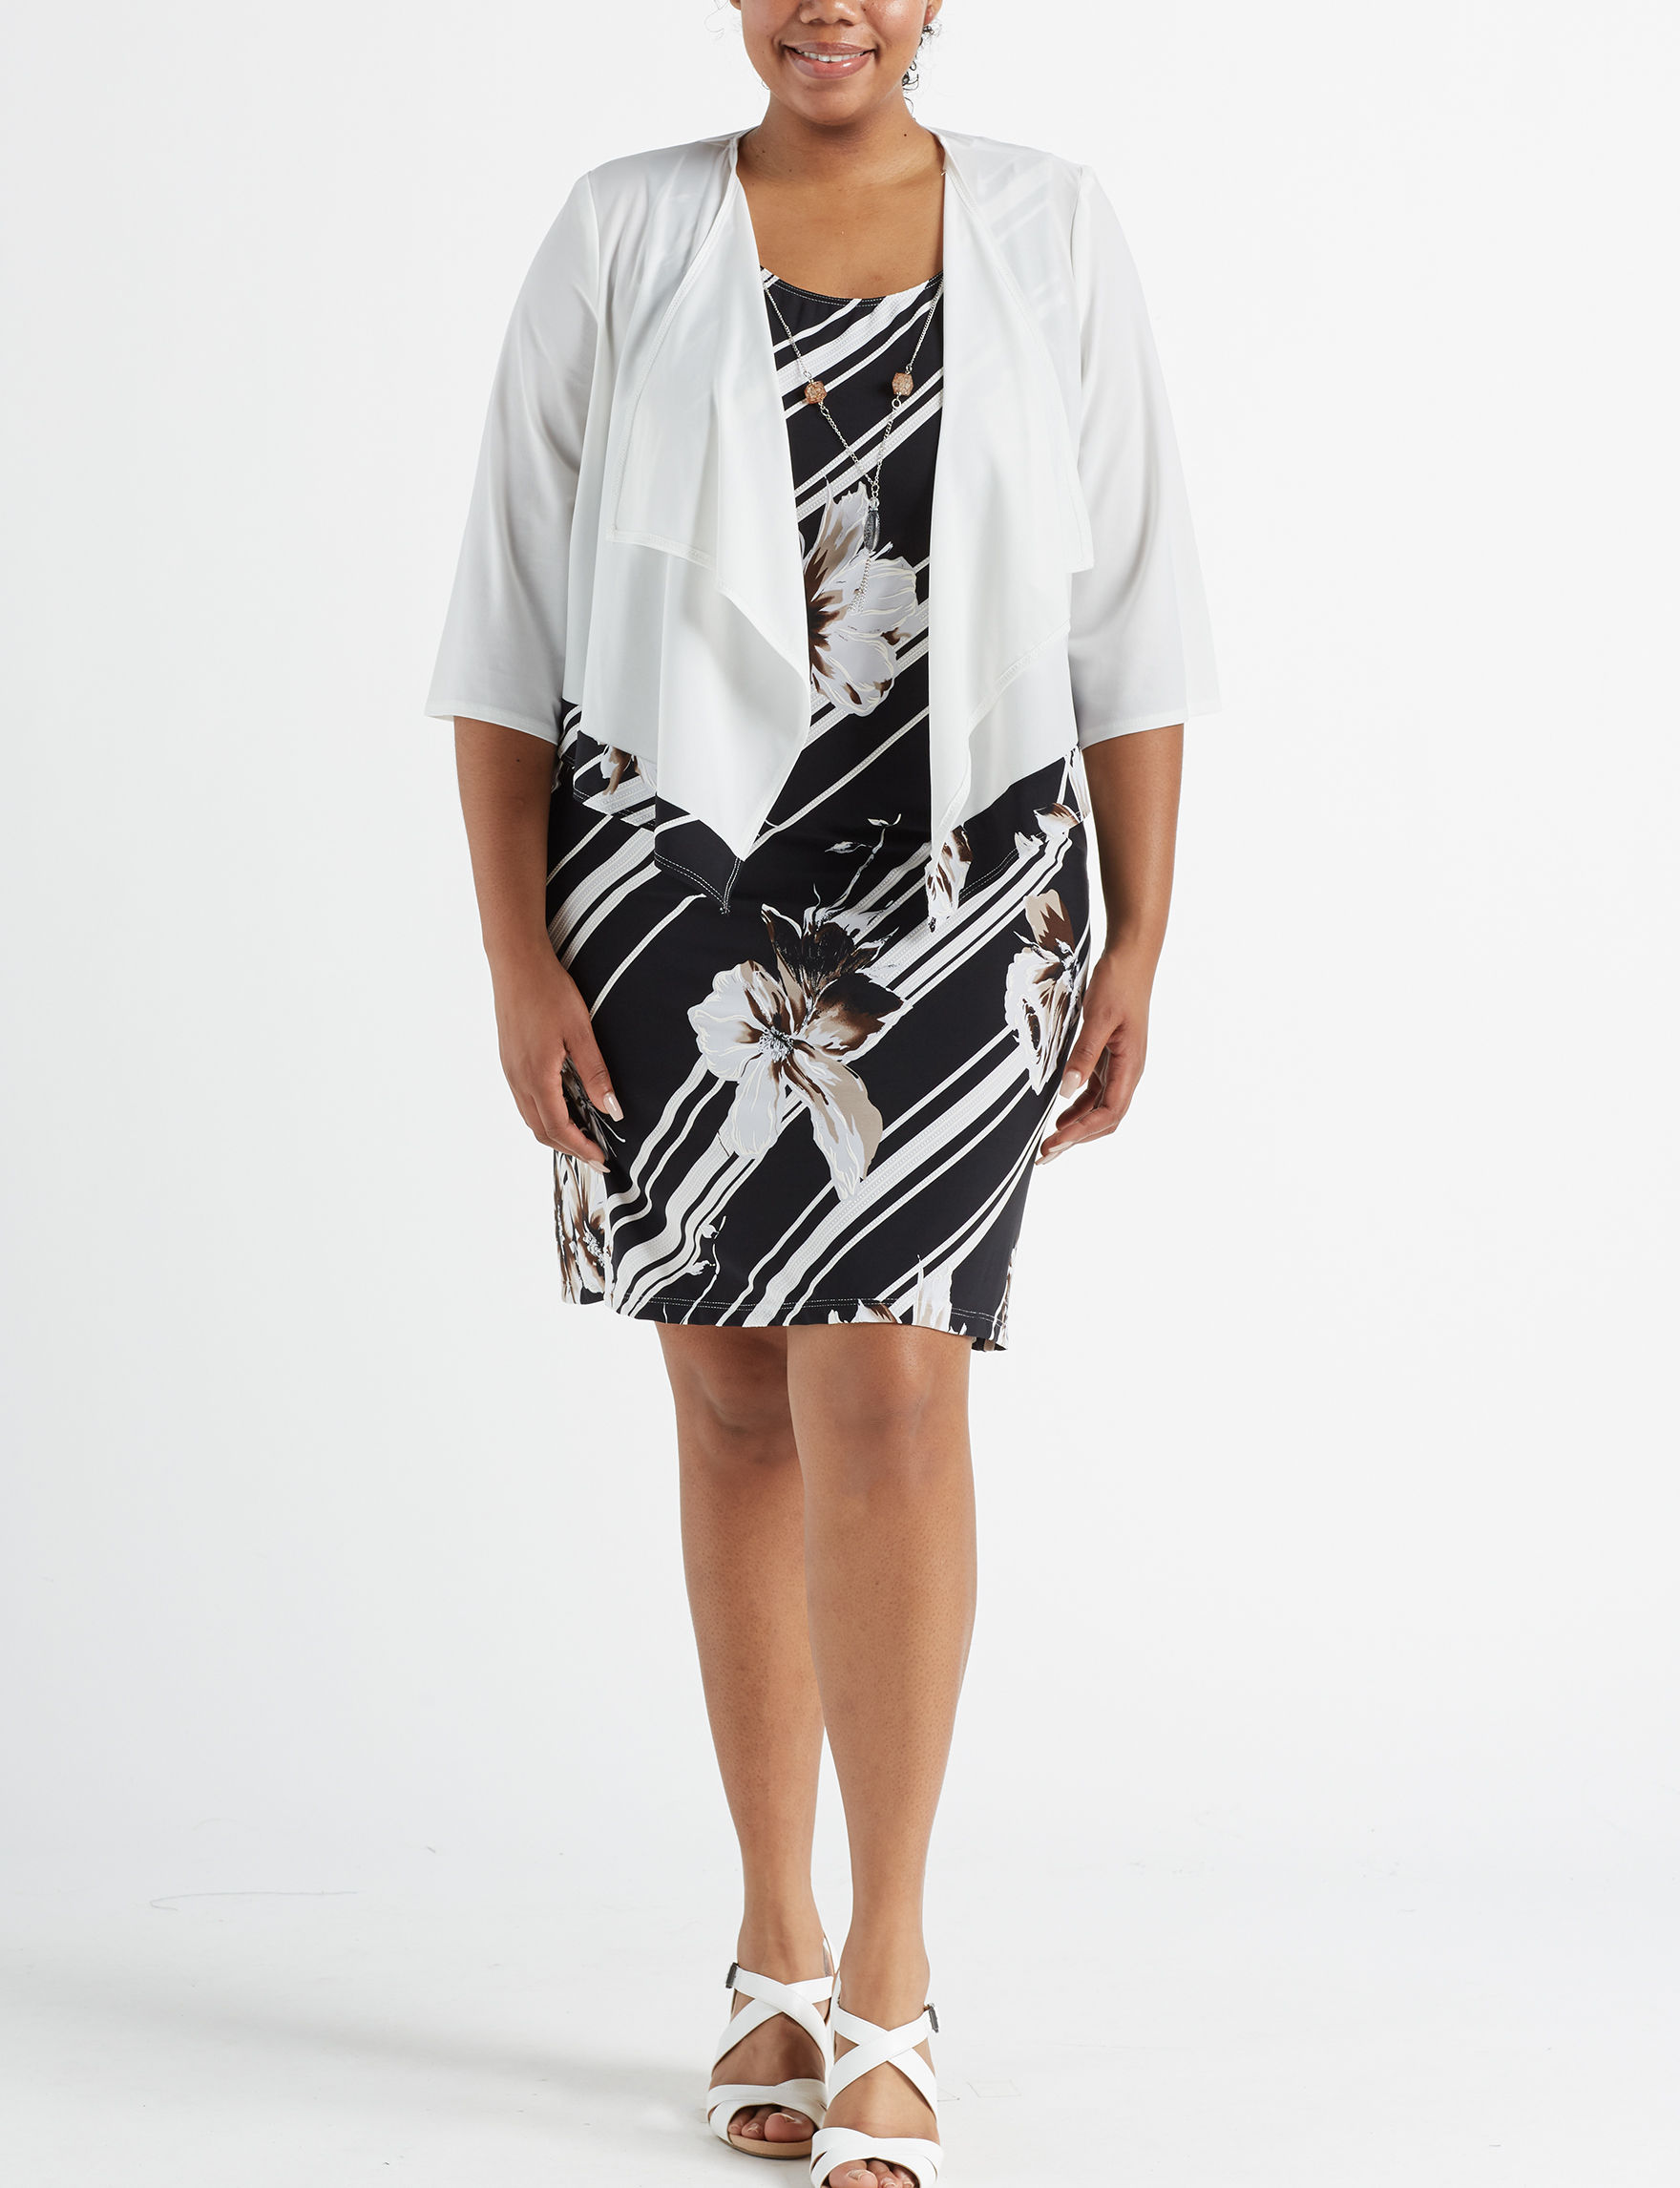 R & M Richards White Stripe Everyday & Casual Jacket Dresses